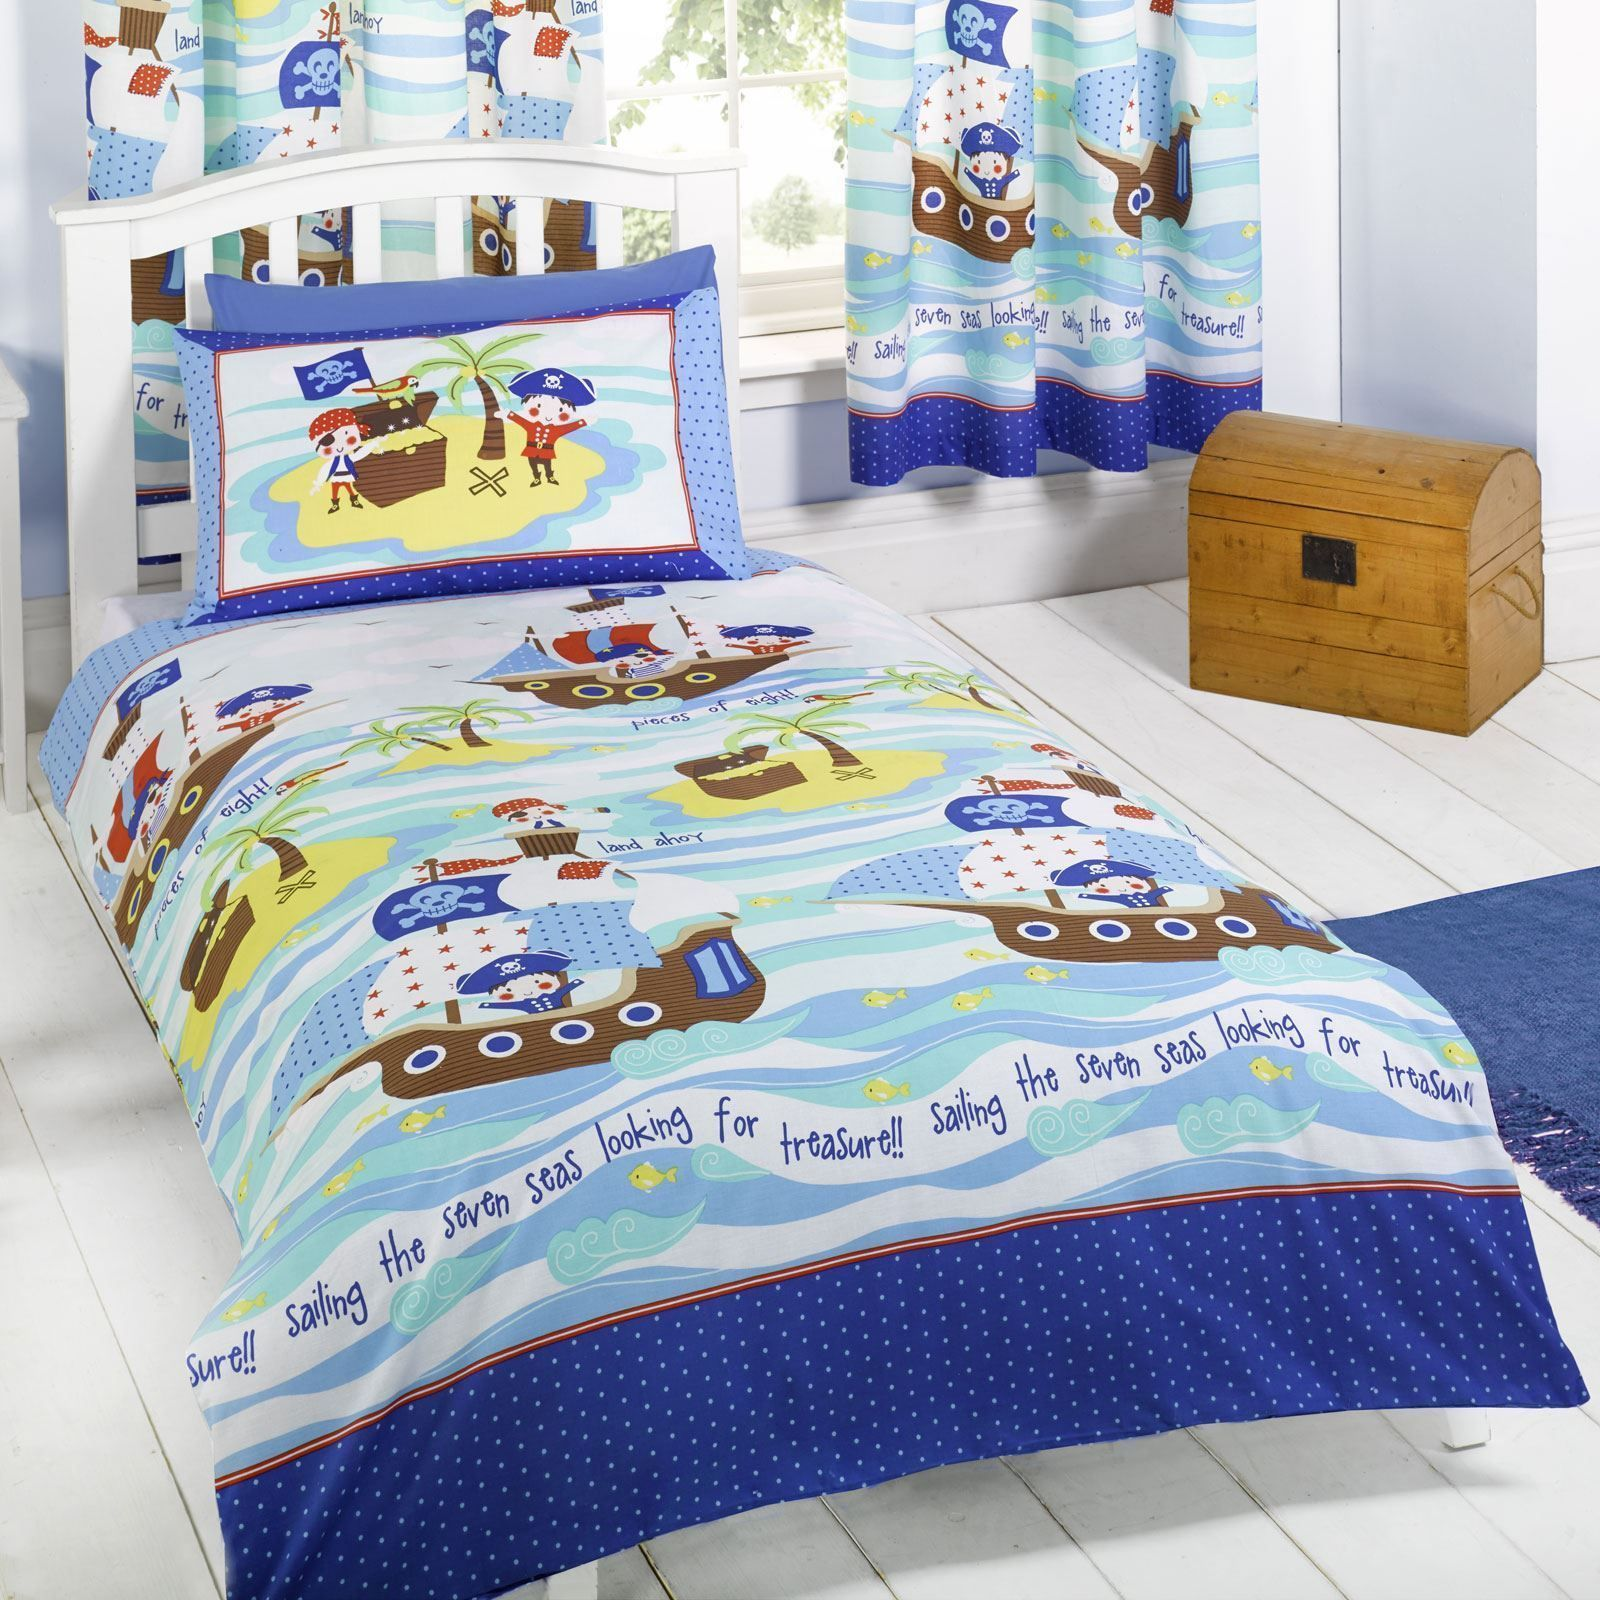 Bed cover in bedding ebay - Childrens Disney And Character Single Duvet Covers Kids Bedding Sets Ebay